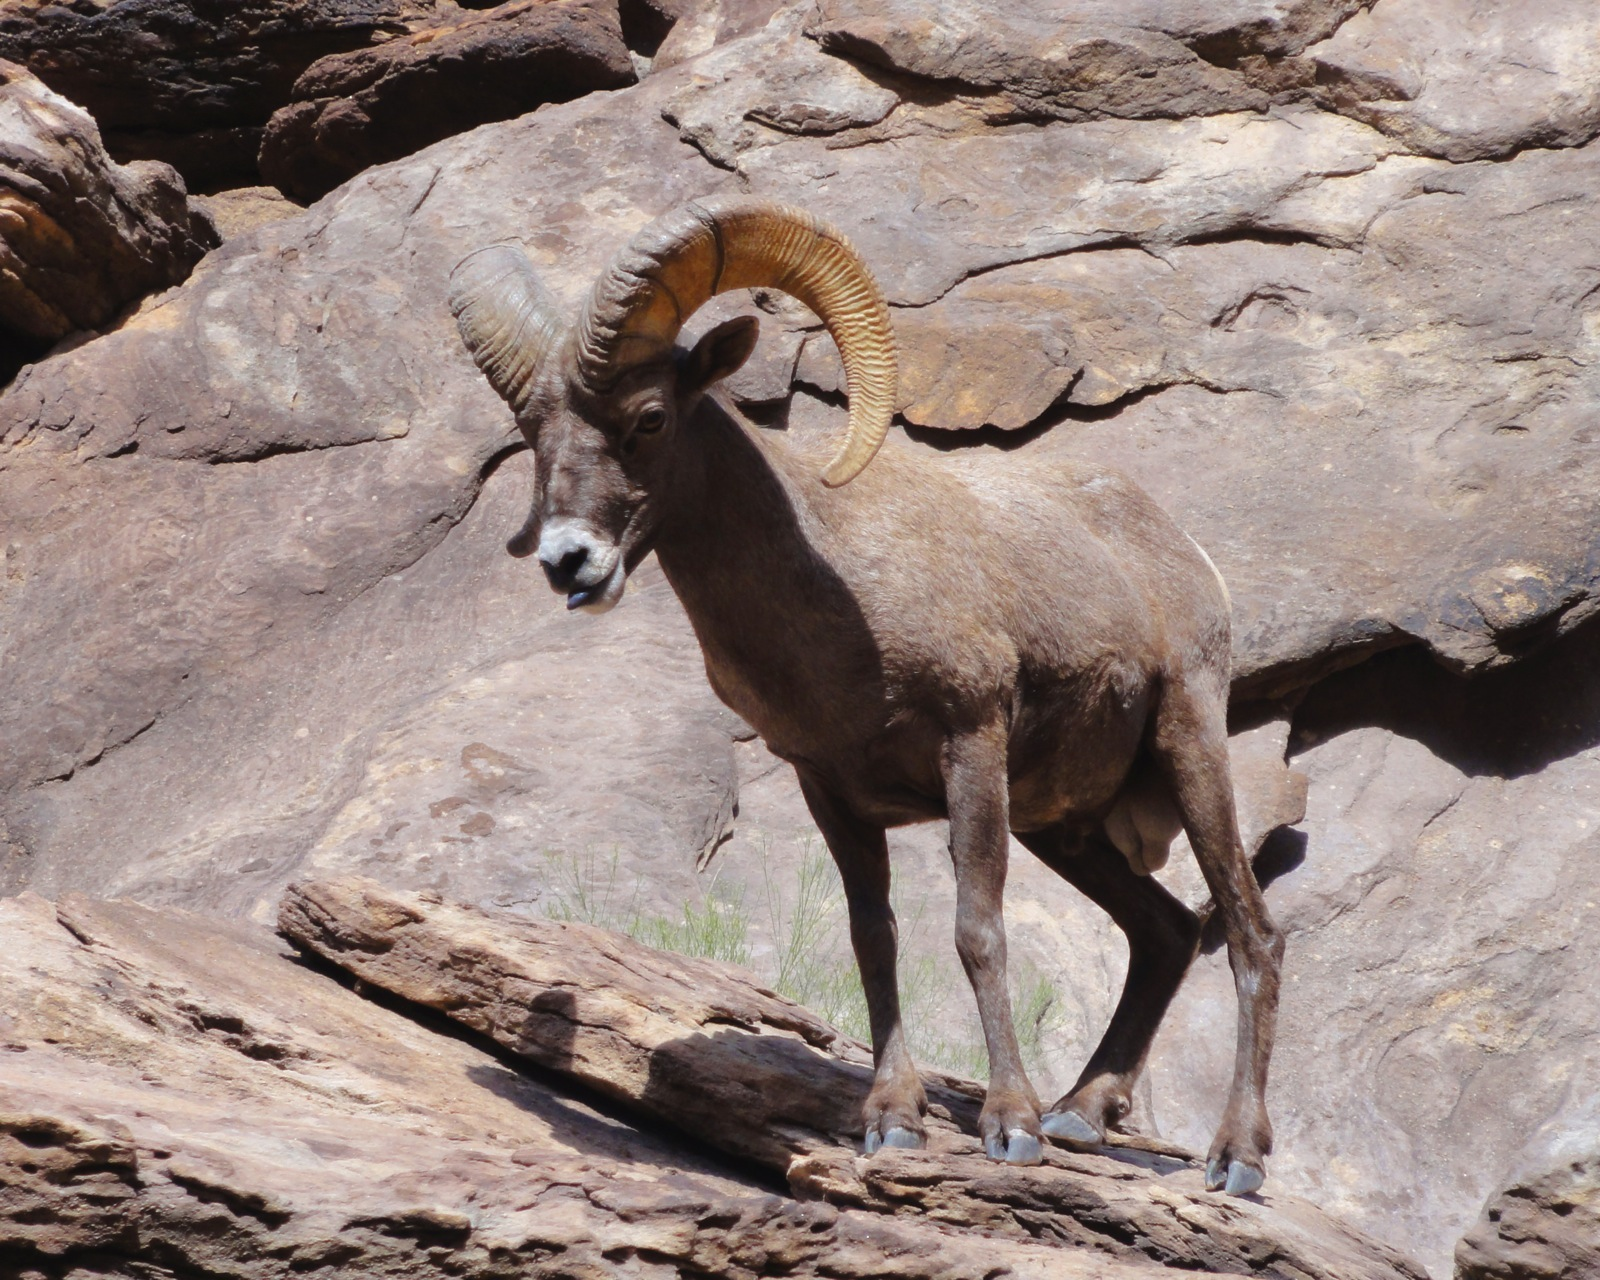 A large big horned sheep maneuvers the rugged walls of the Grand Canyon near the Hermit rapids.